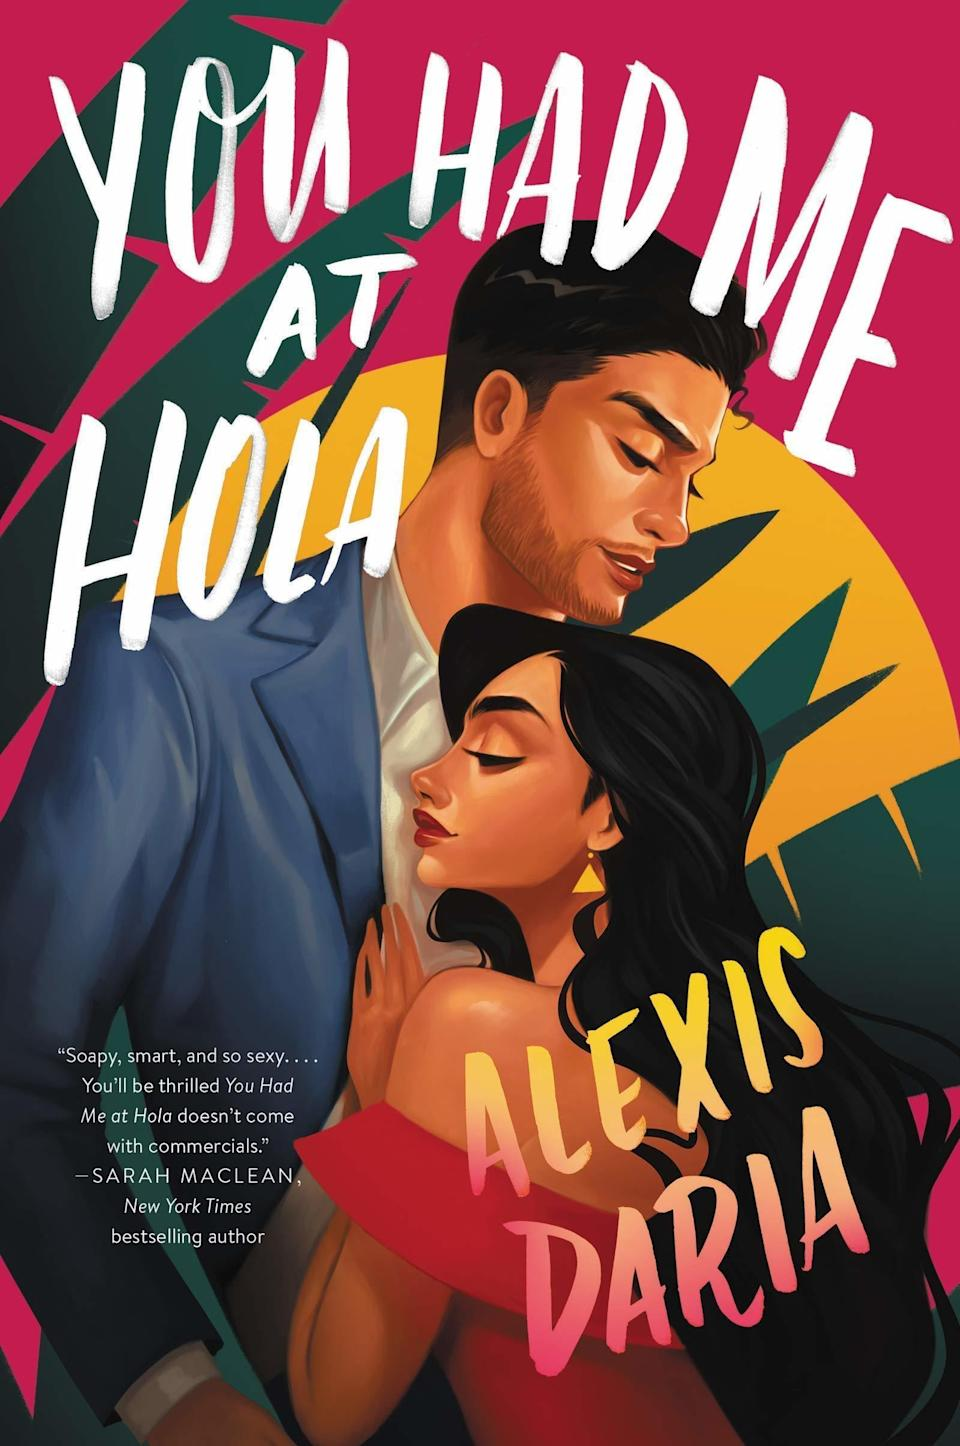 <p>A Libra will feel right at home with the bundle of contradictions that is the leading couple of Alexis Daria's <span><strong>You Had Me at Hola</strong></span>. Ashton, a telenovela superstar, is constantly using his natural charm to woo everyone he meets while trying to conceal a major secret in his private life. When he's cast opposite Jasmine, a soap star trying to rebuild her career after a public breakup, they're both stuck struggling with balancing the needs of their careers with their own personal wants and needs. That balancing act, along with their mutual compassion when their secrets start to come out, makes this a very Libra romance indeed!</p>